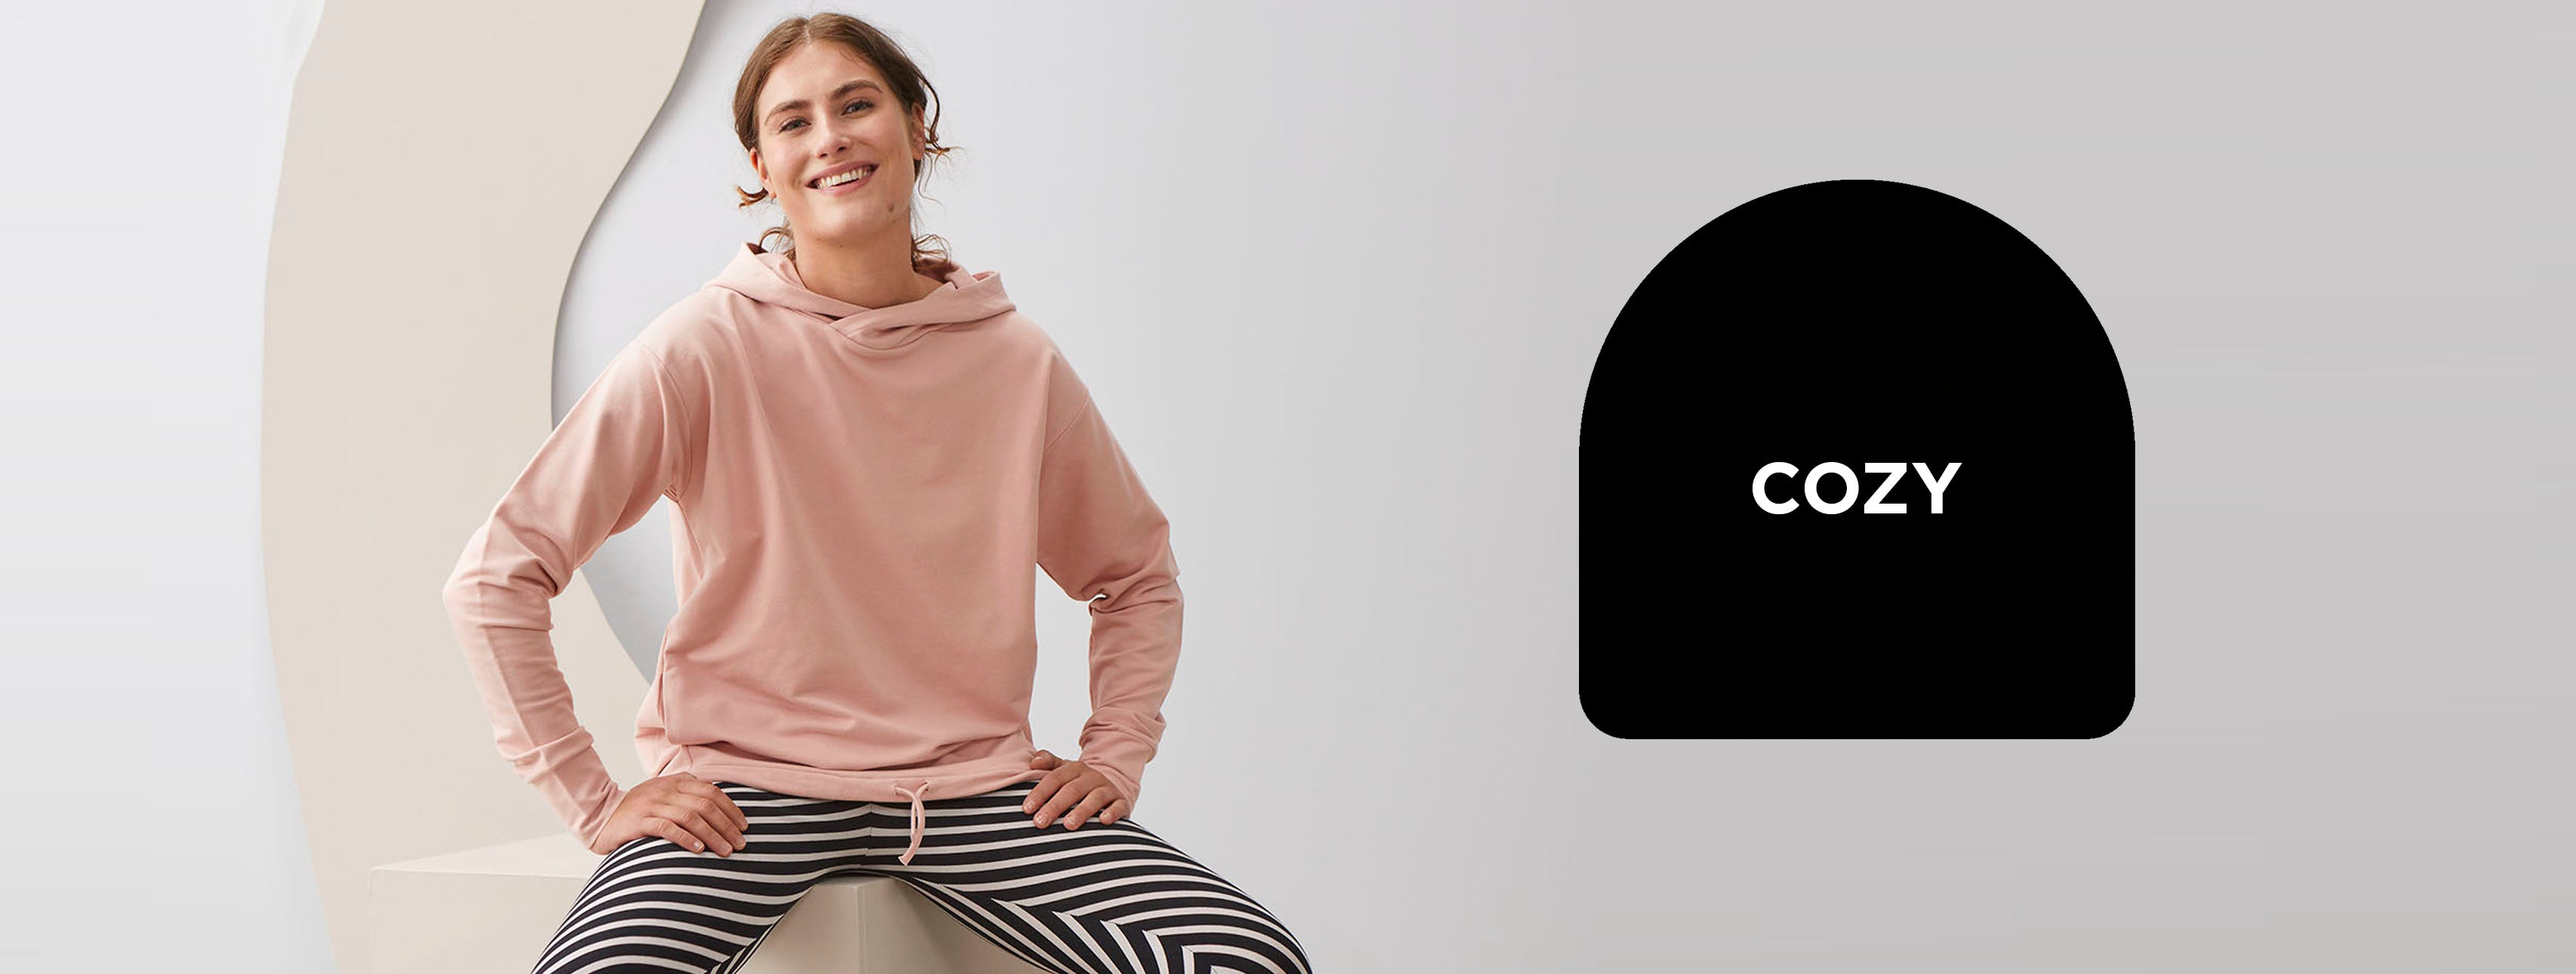 Papu Design cozy womens collection organic cotton relaxed fit sustainable fashion